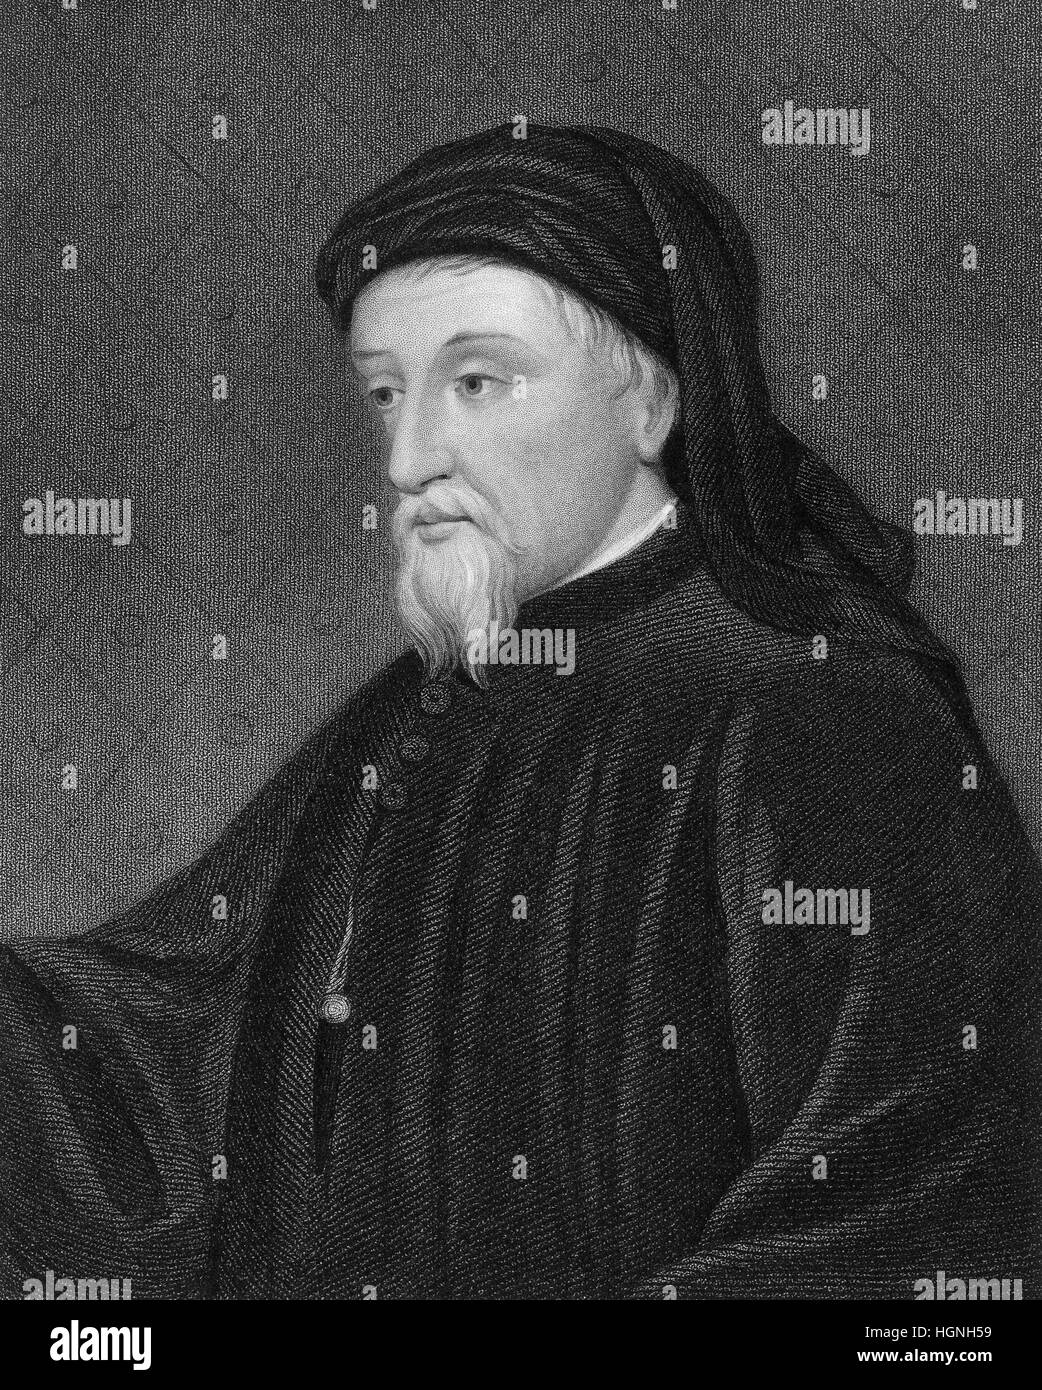 Geoffrey Chaucer, ca. 1343 - 1400, the greatest English poet of the Middle Ages - Stock Image